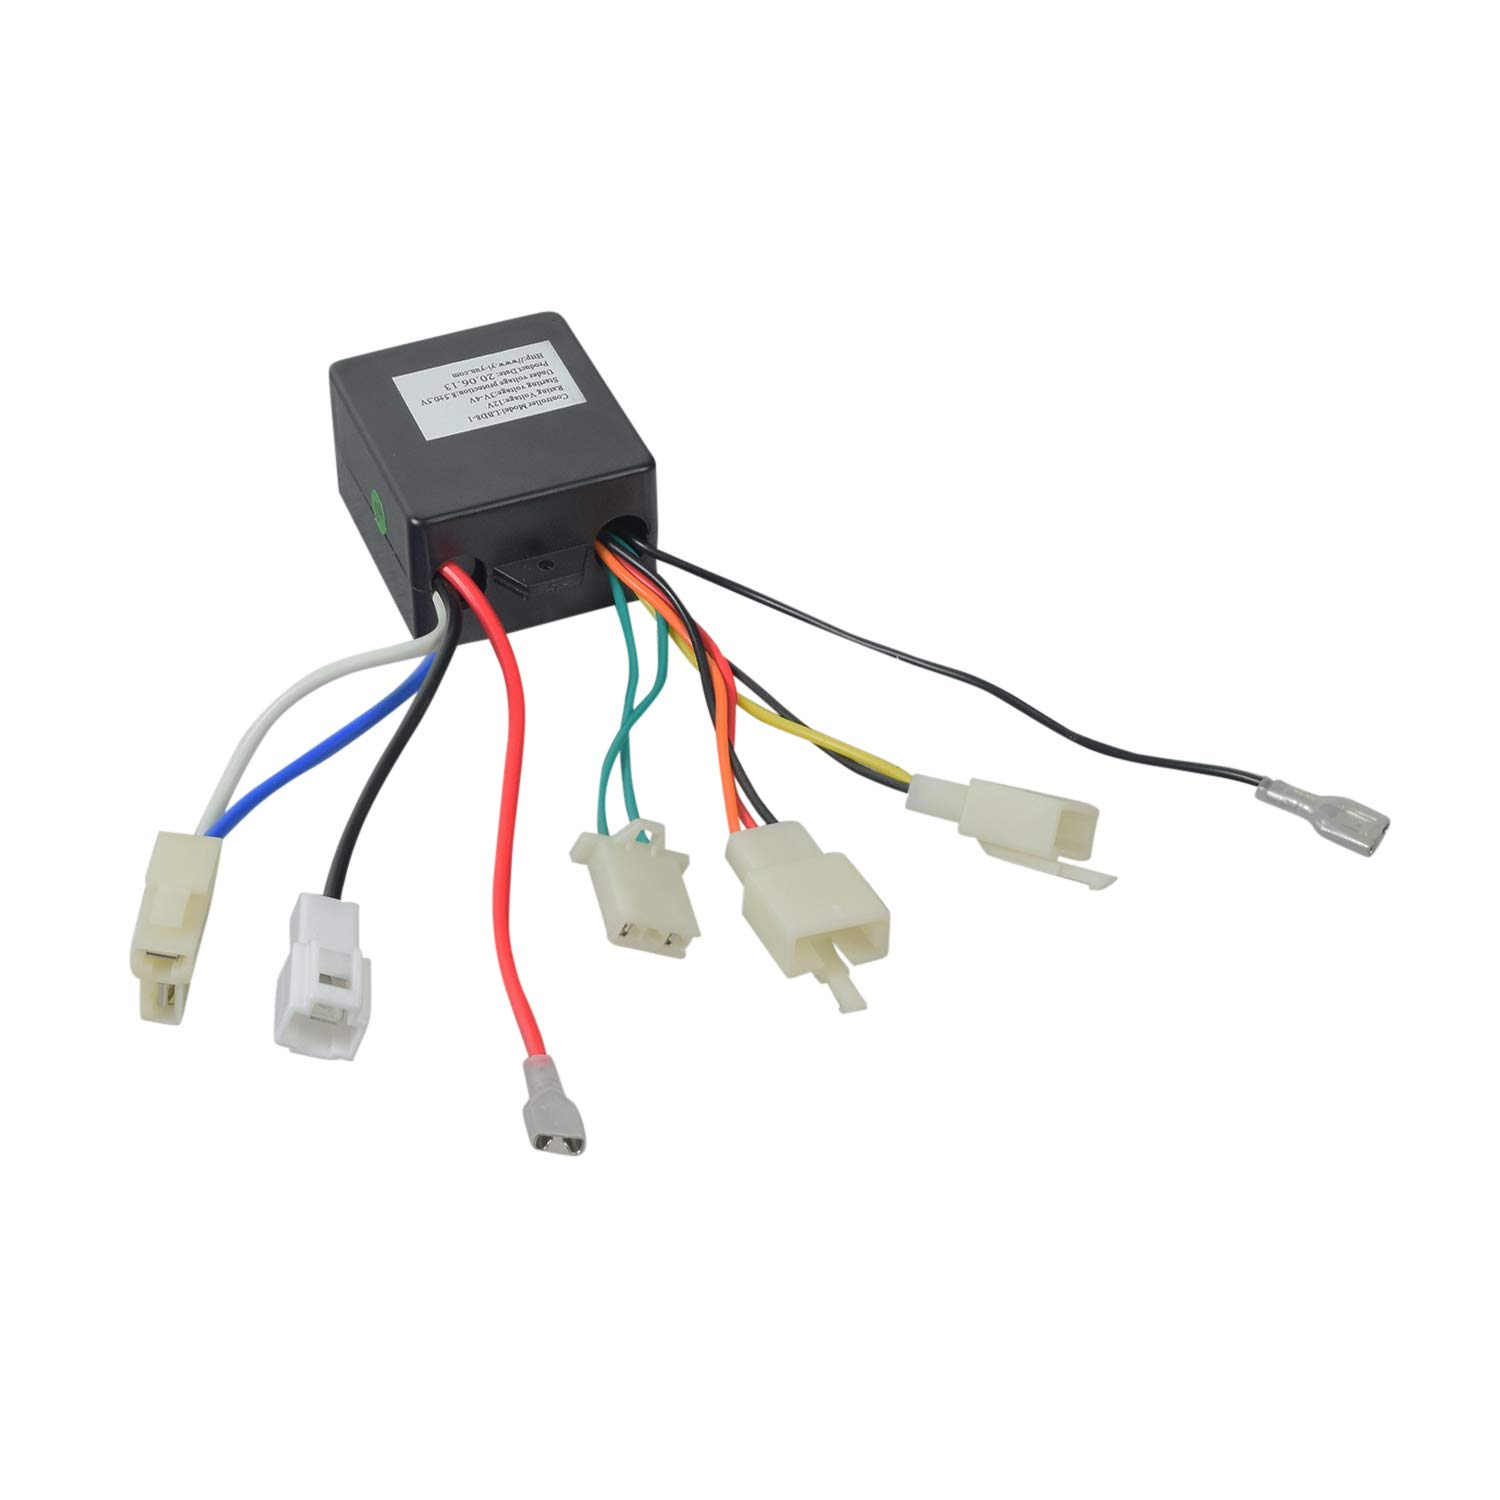 AlveyTech 12 Volt LBD8-1 Controller for The Pulse RK9 & Revster Electric Scooters